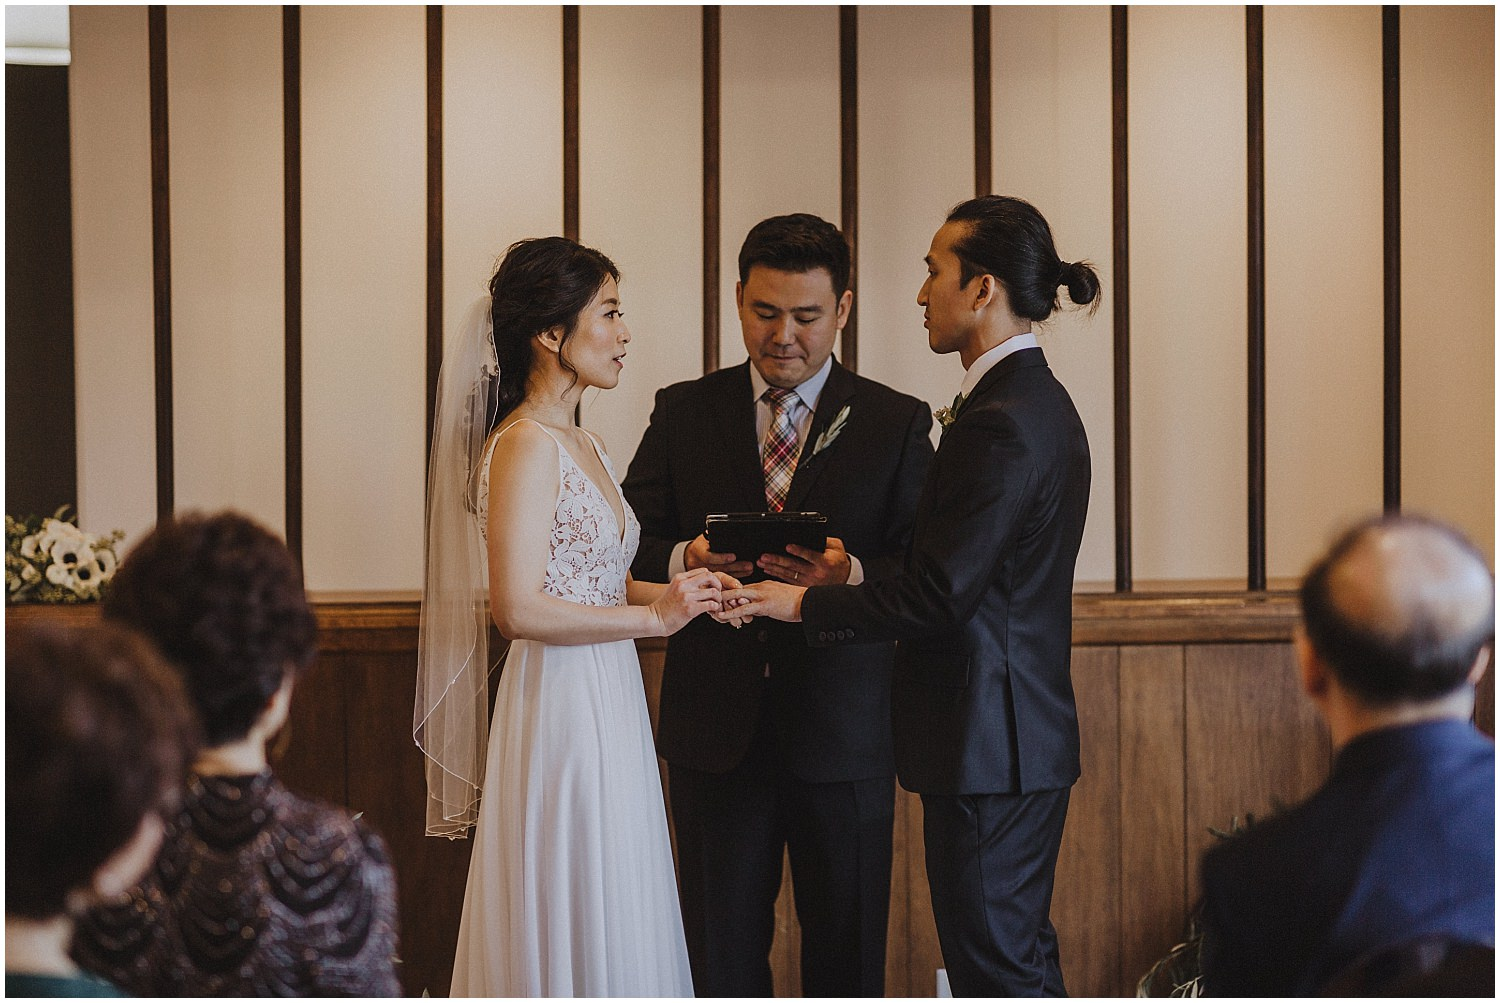 exchange of wedding rings at an in home wedding Chicago wedding photographer kyle szeto